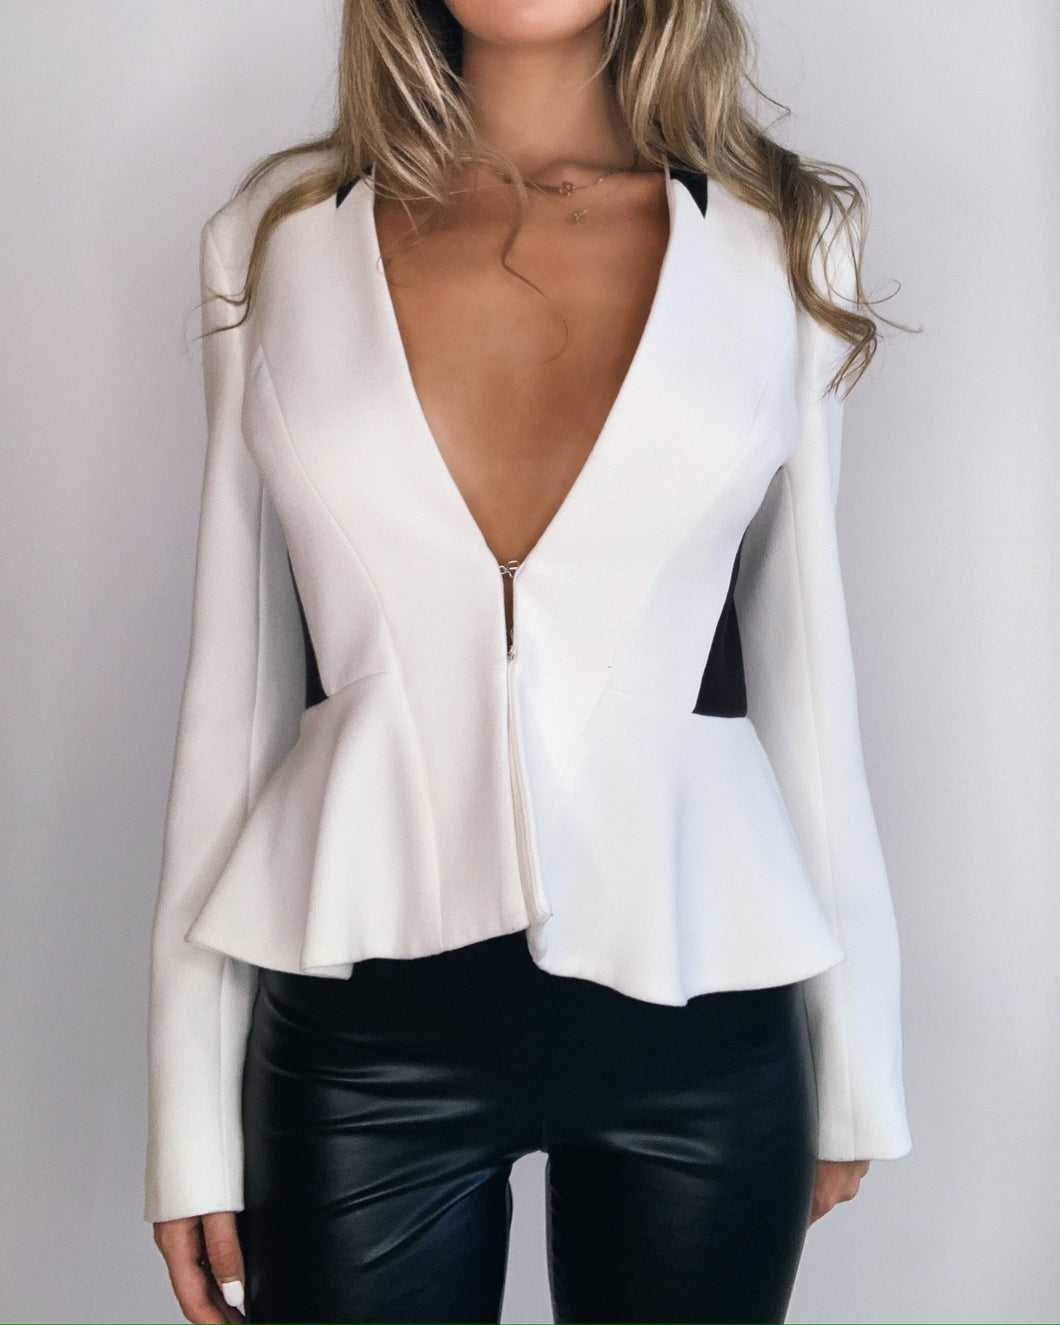 Black & White Color Block Blazer